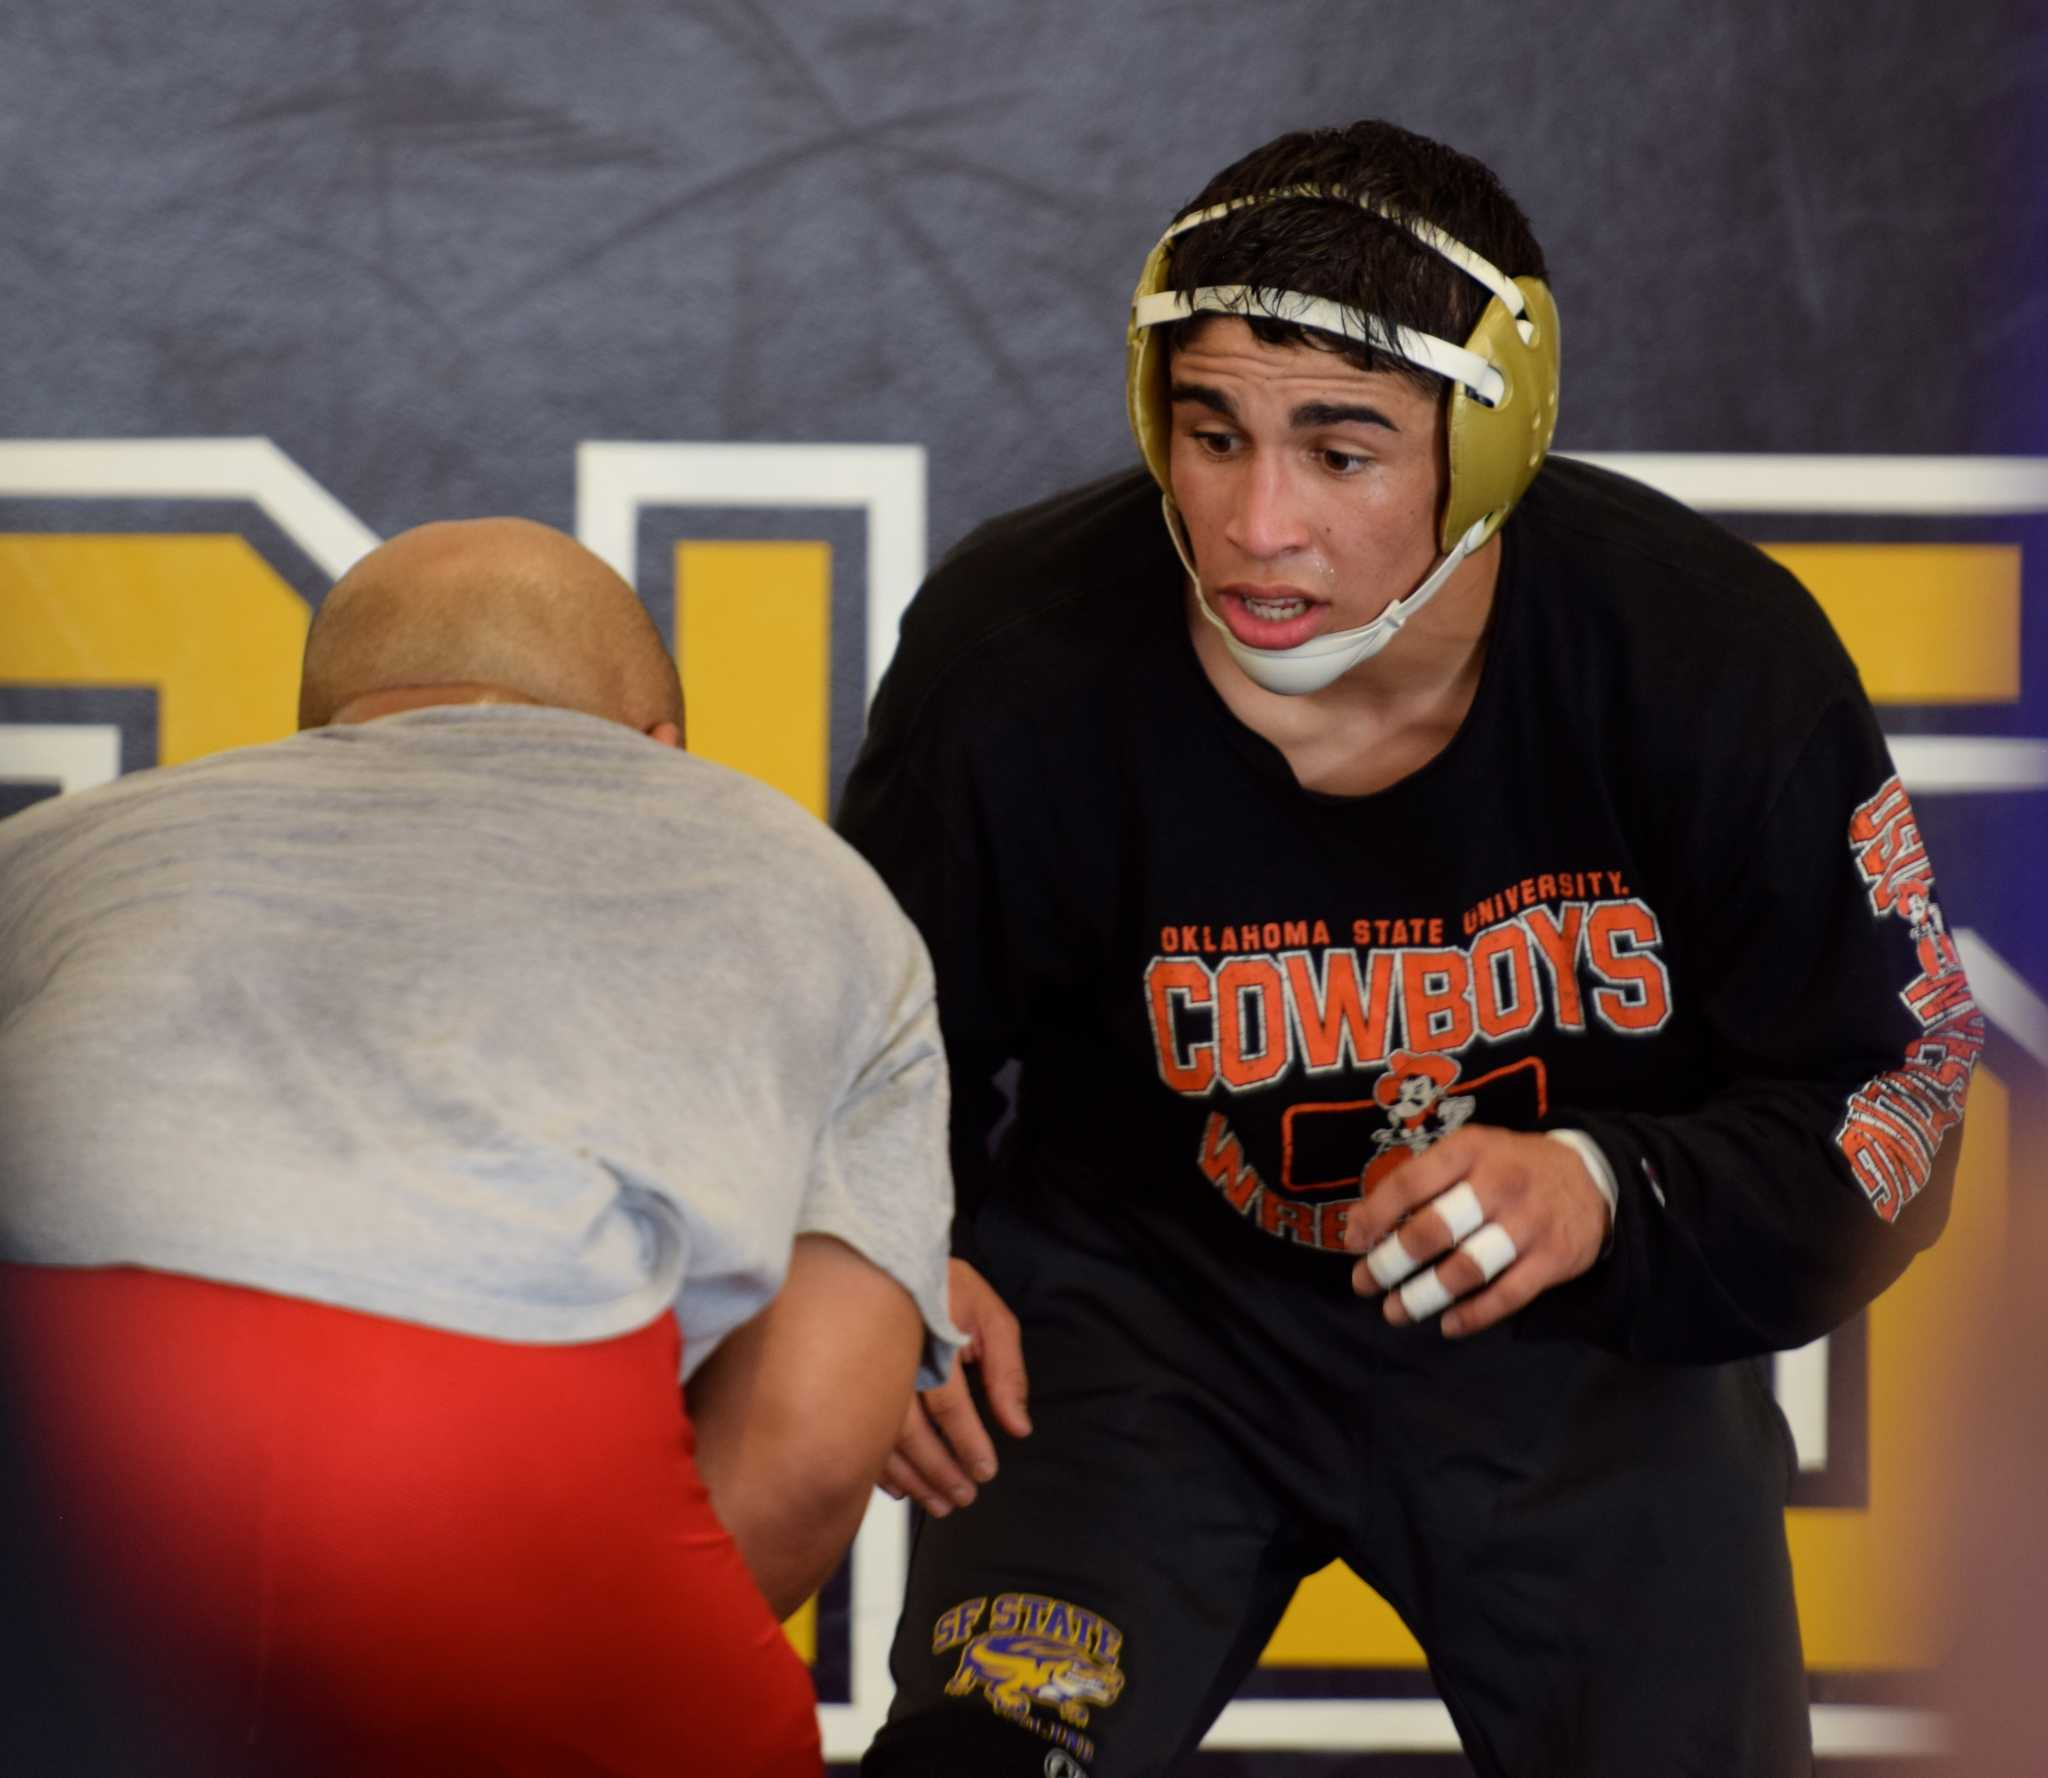 Fern Giron, freshman on the SF State wrestling team at practice preparing for the upcoming NCAA Division II National Wrestling Championships Monday. (Eric Chan / Xpress)